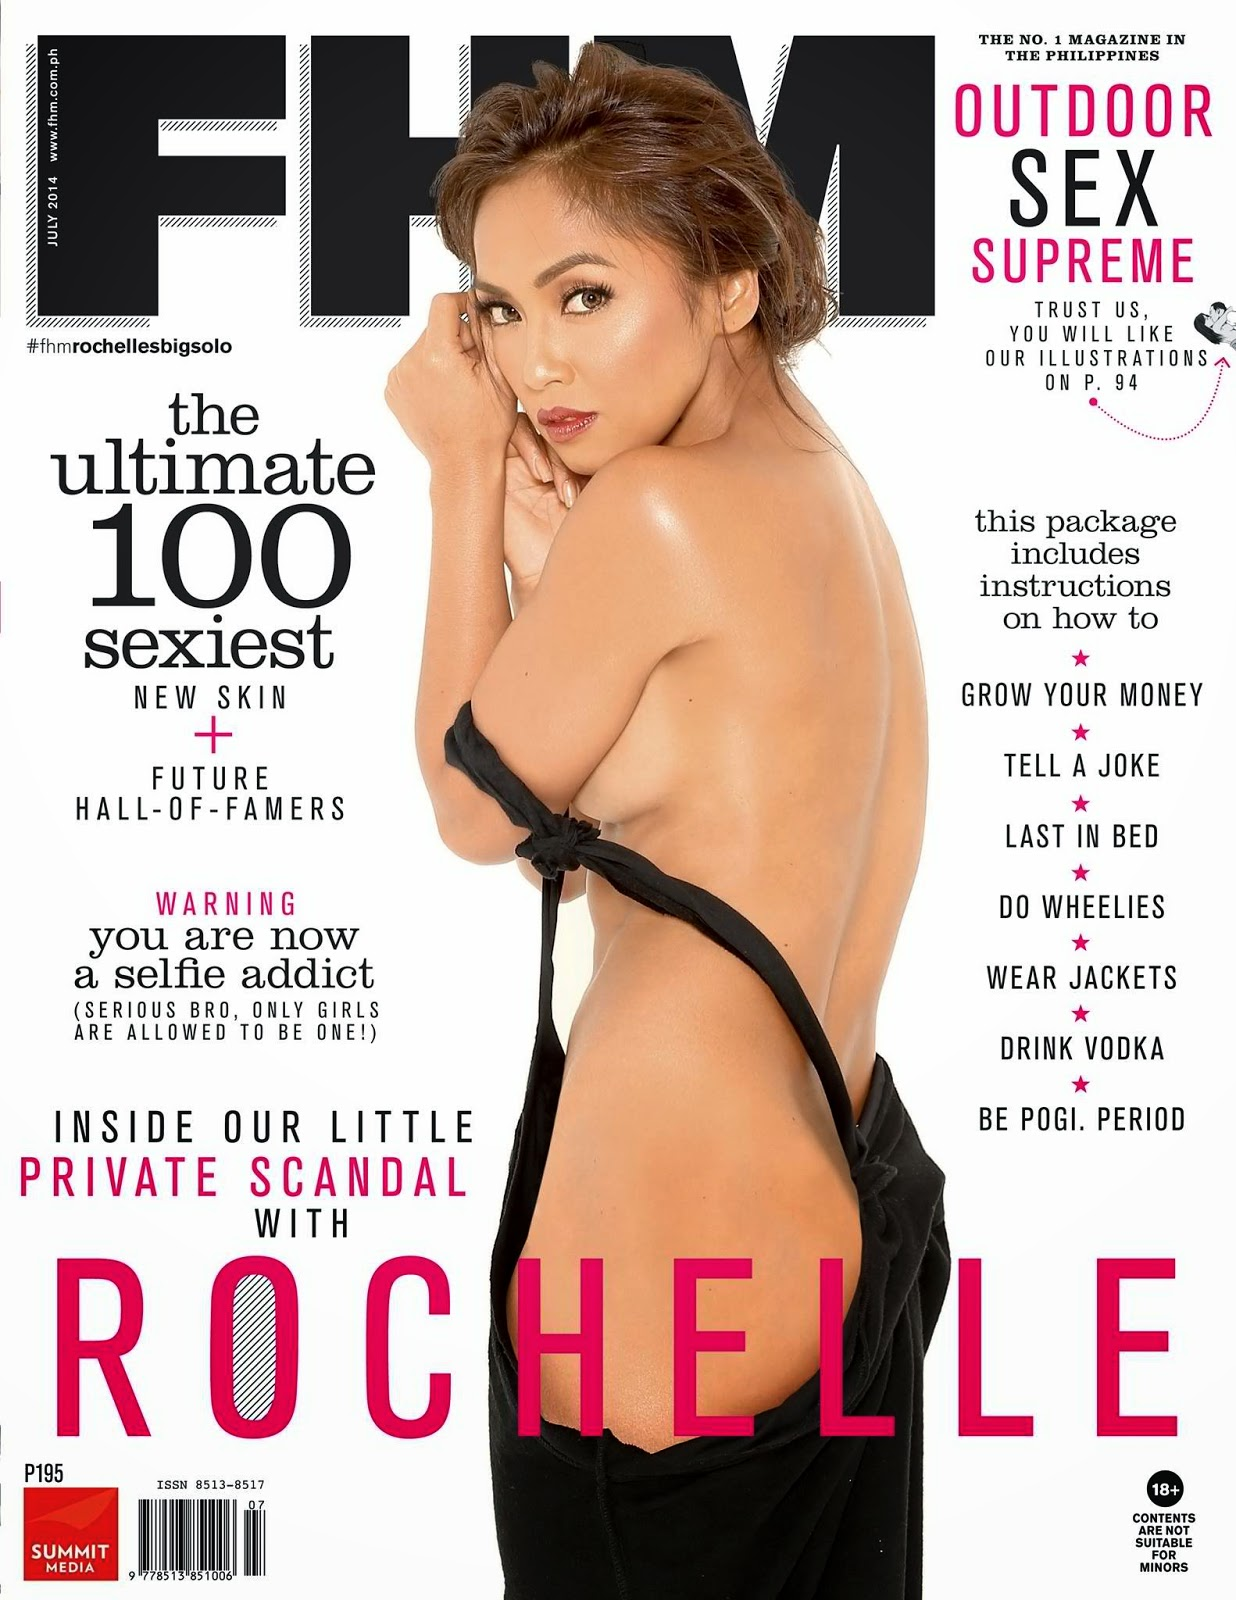 Former SexBomb Dancer Rochelle Pangilinan posed almost naked in FHM's July 2014 issue